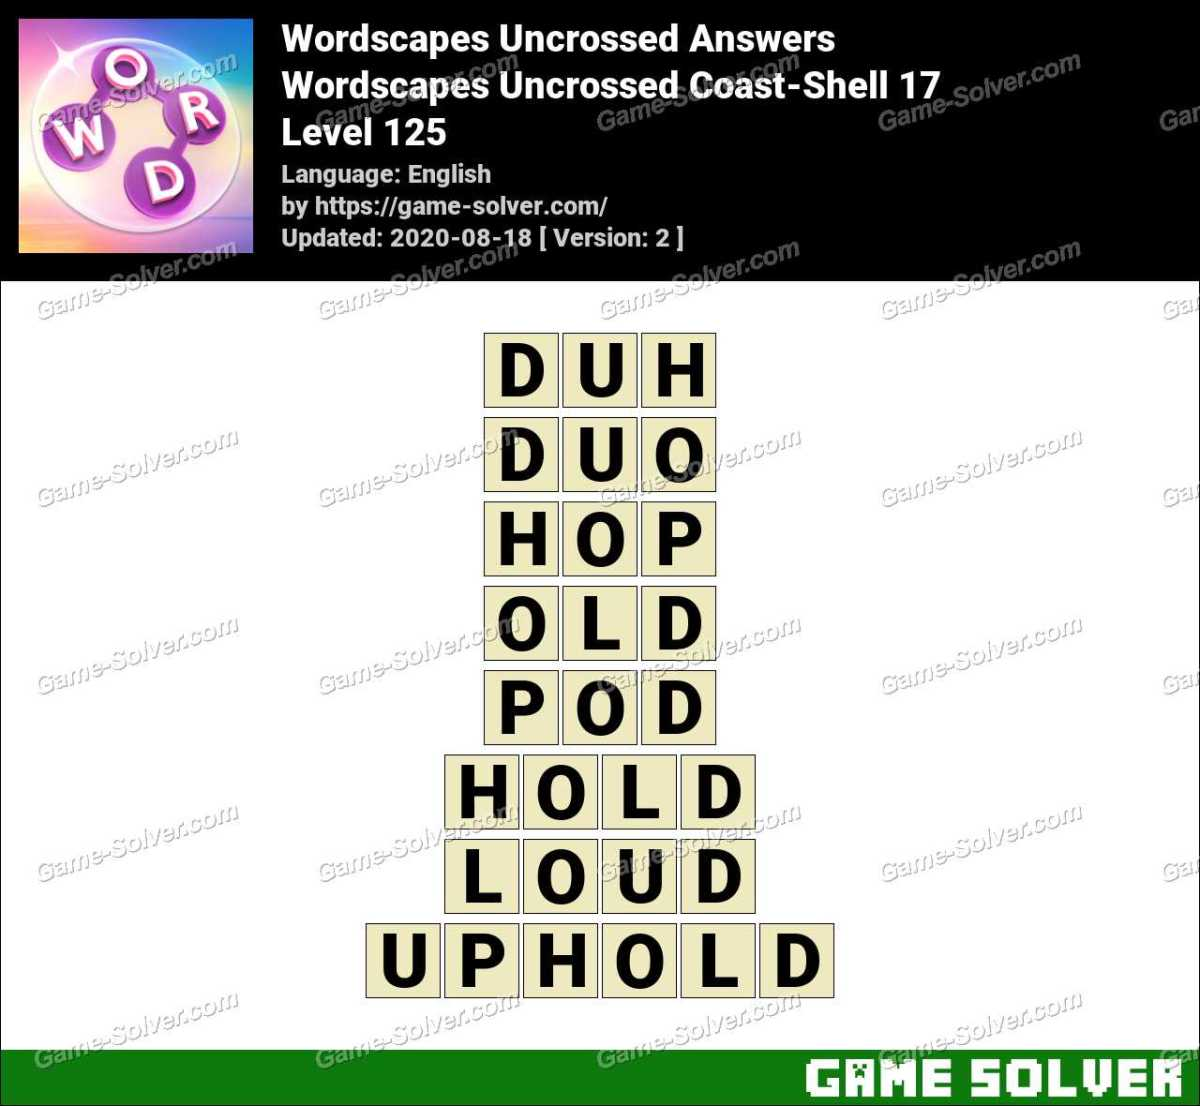 Wordscapes Uncrossed Coast-Shell 17 Answers